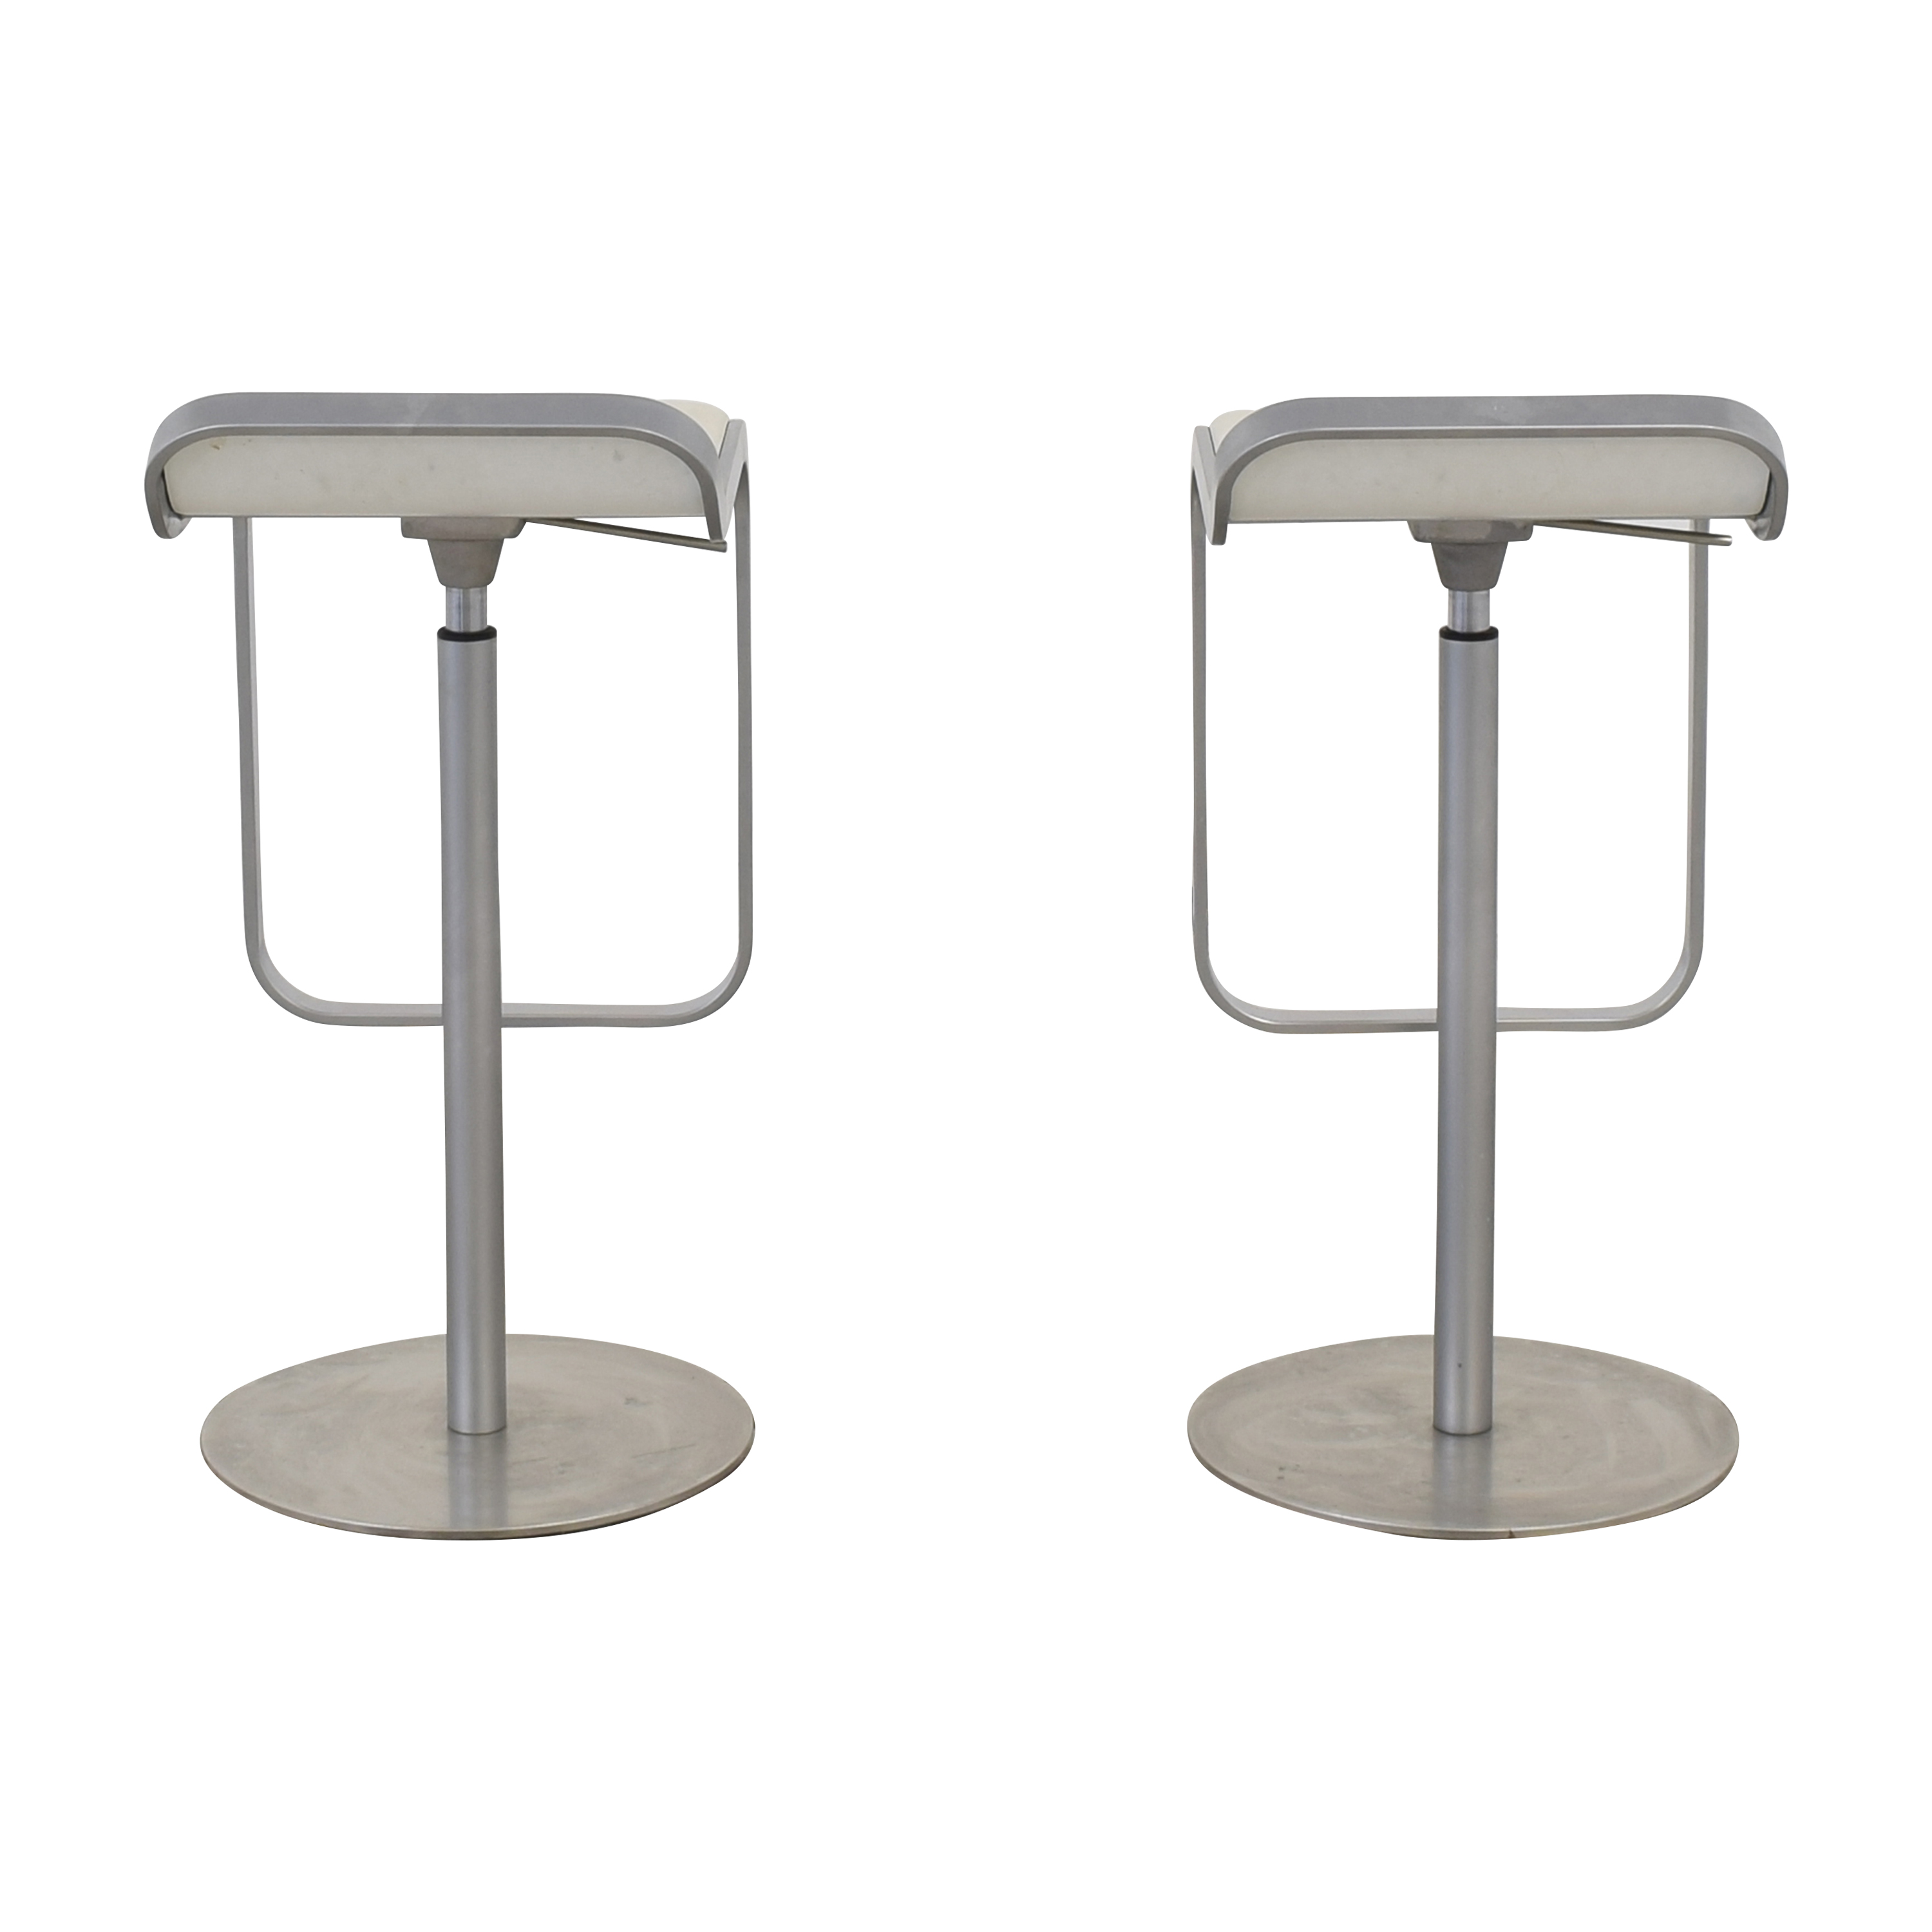 buy Design Within Reach LEM Piston Stools Design Within Reach Chairs